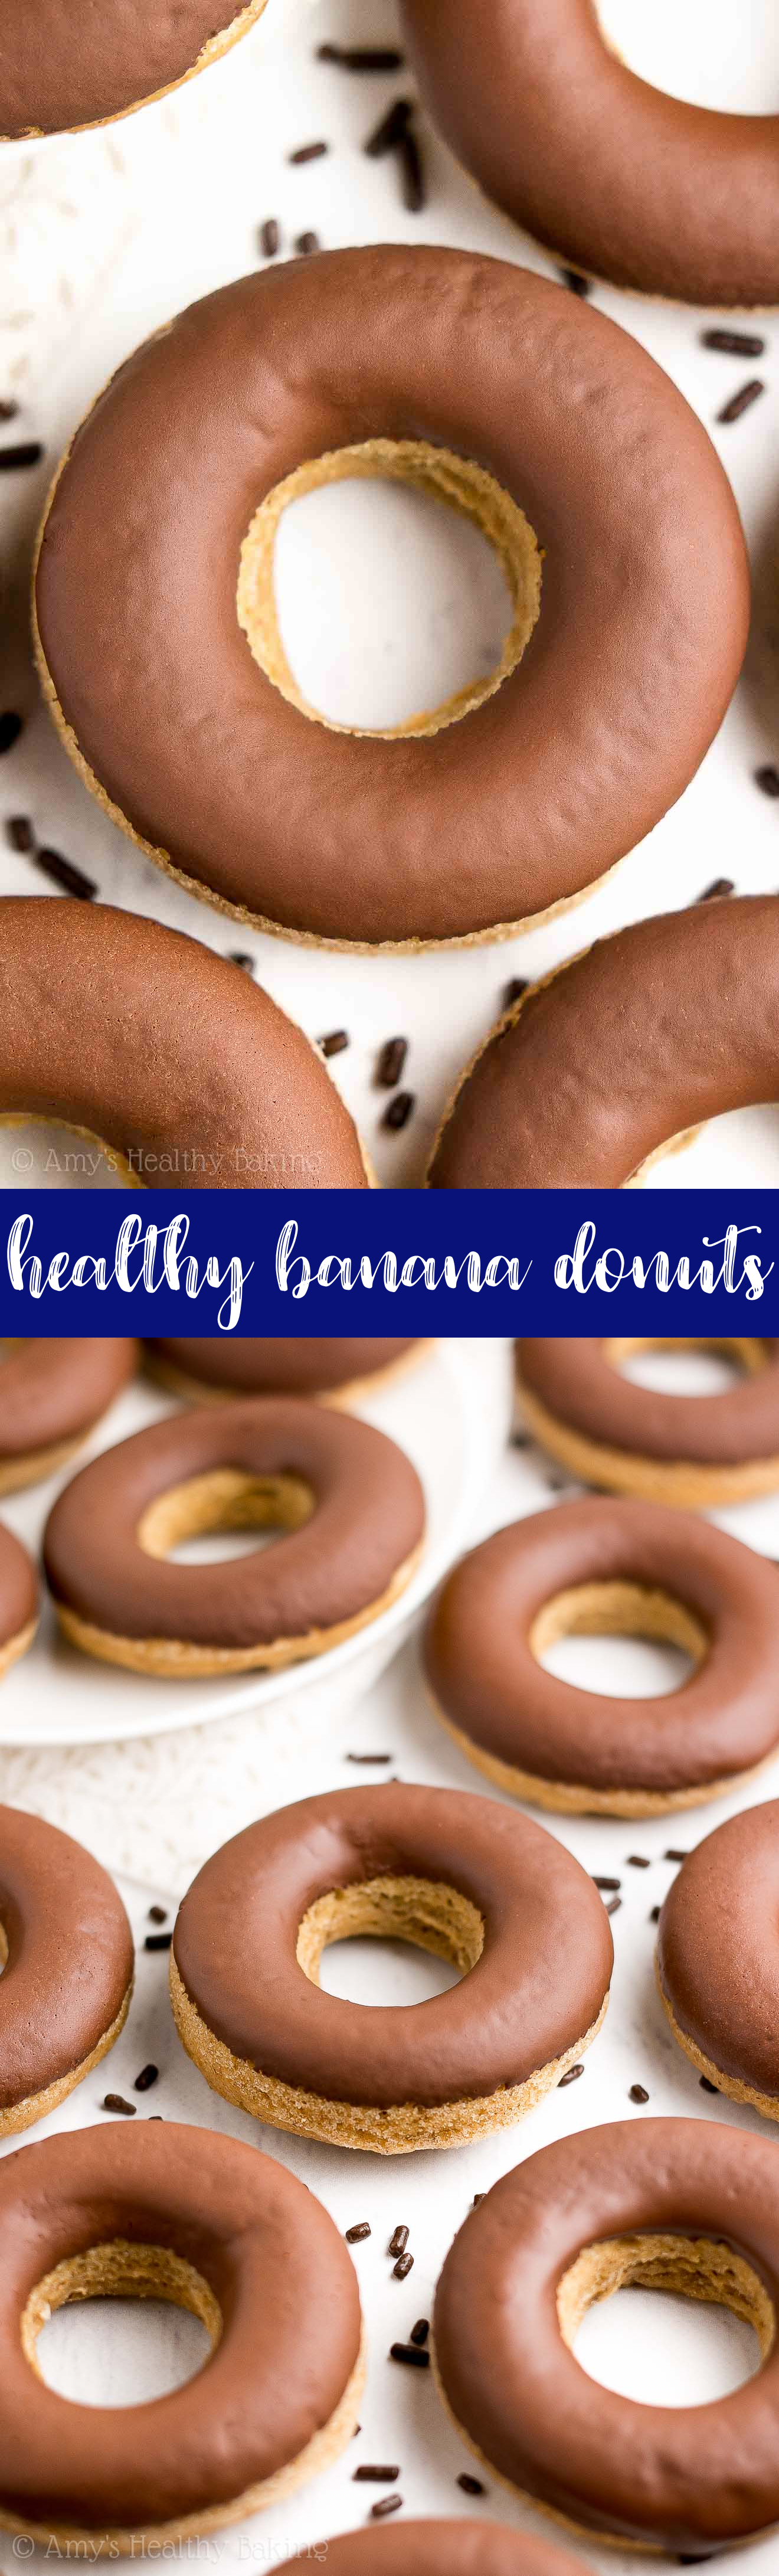 Healthy Banana Donuts With Chocolate Glaze Amy S Healthy